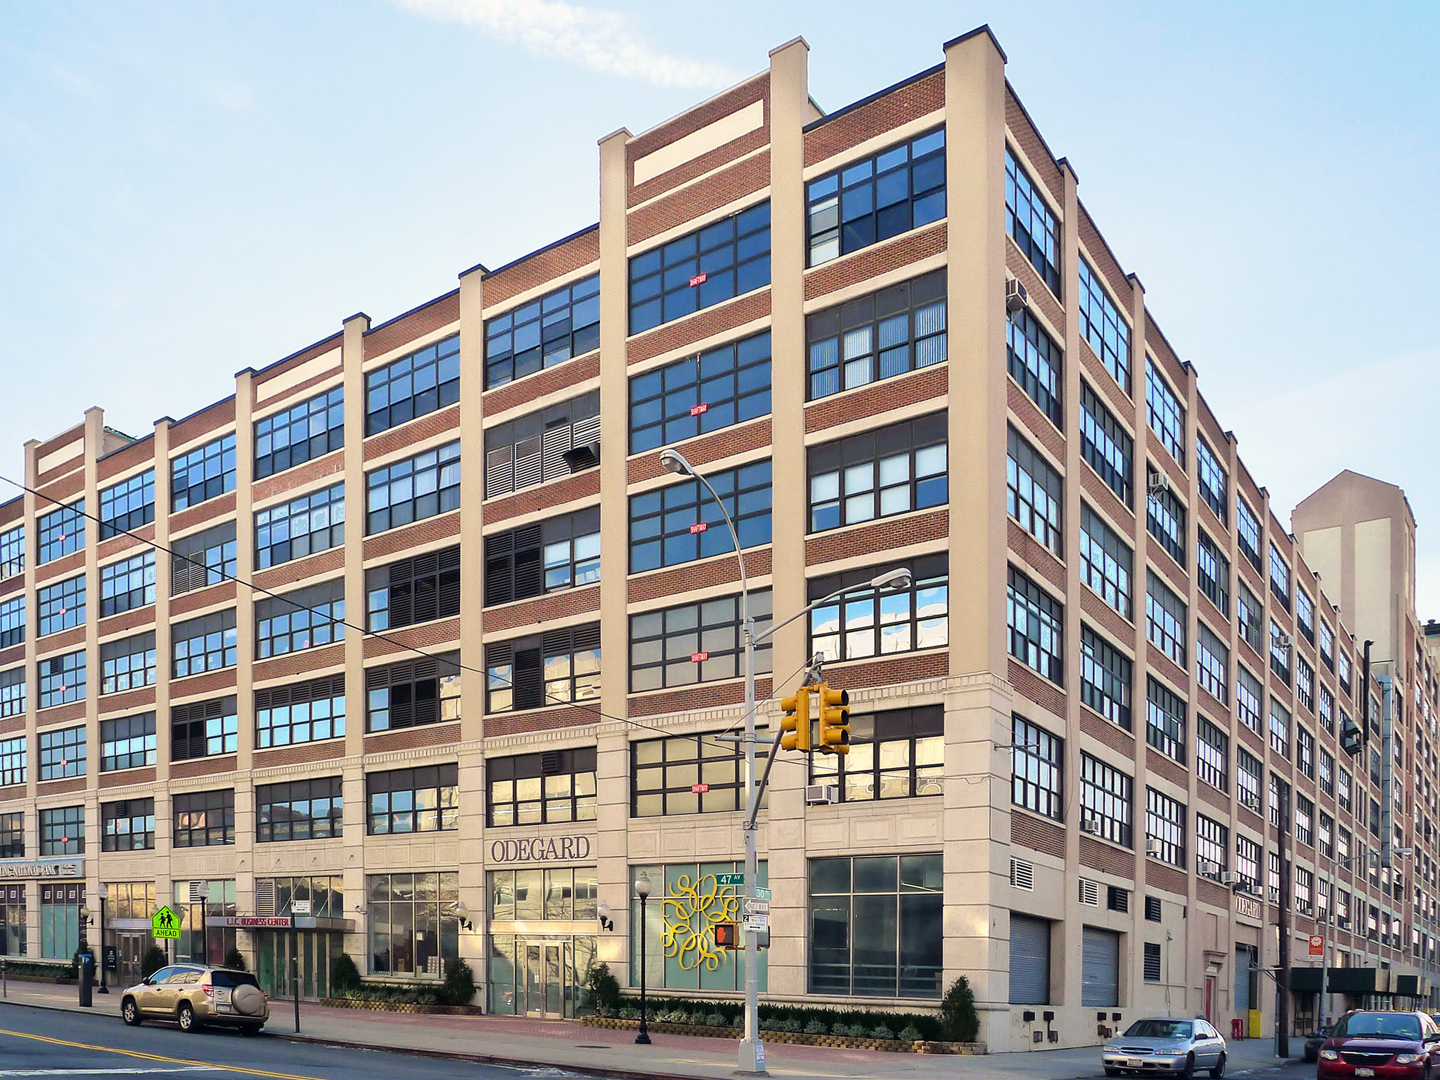 The Factory in Long Island City: A New Workplace Experience - August 19, 2014 | Newmark Knight FrankA former Macy's furniture warehouse in Long Island City is poised to become the model of collaborative and innovative office spaces in one of New York's up-and-coming …Read More